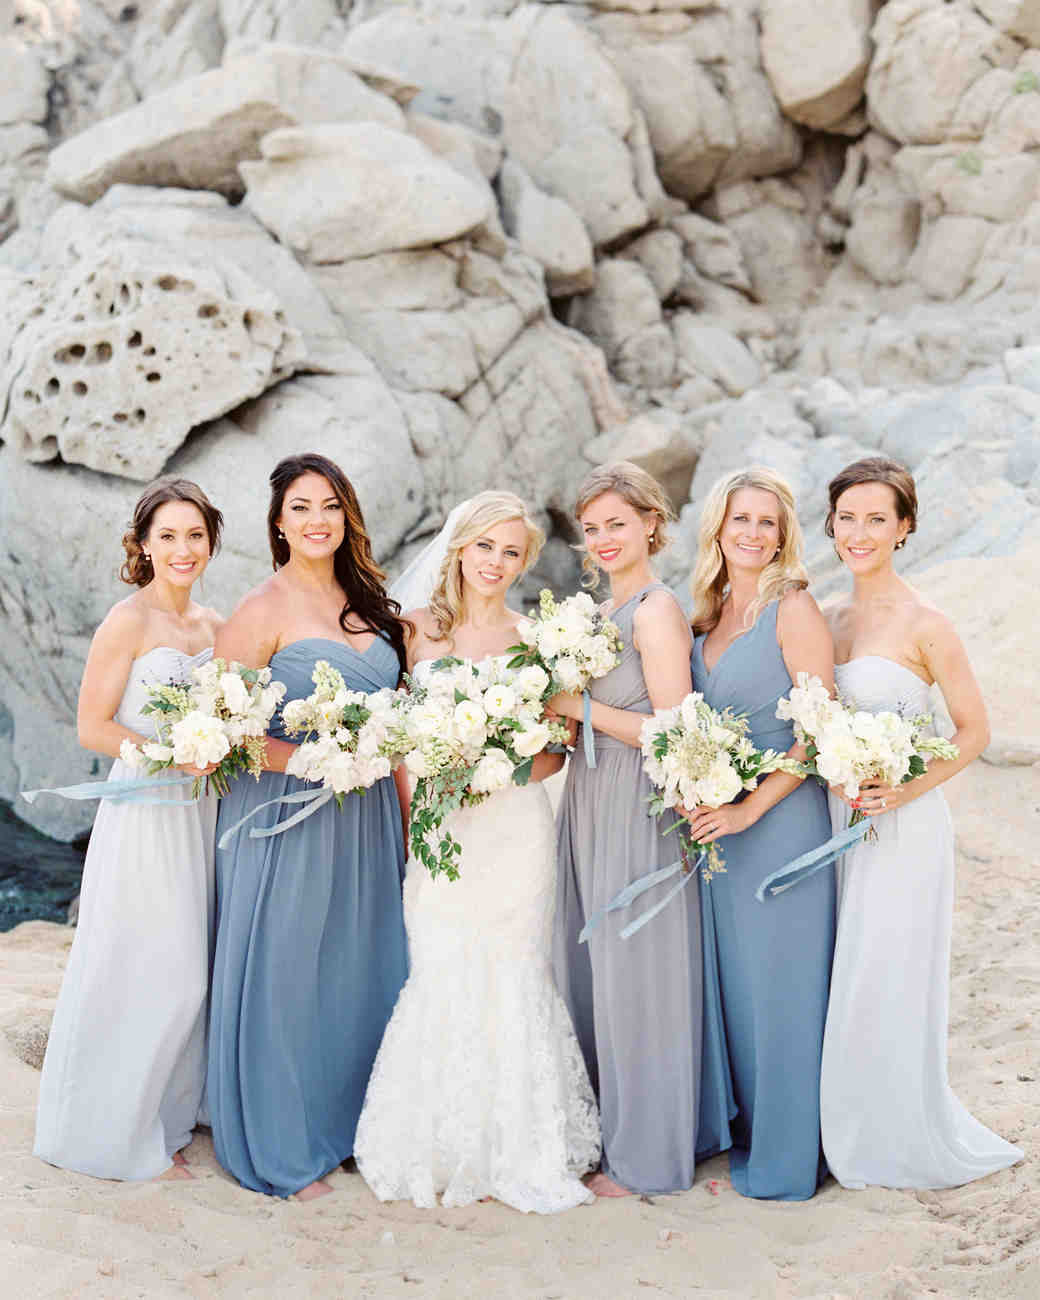 The Bridal Party: Supporting Roles 101